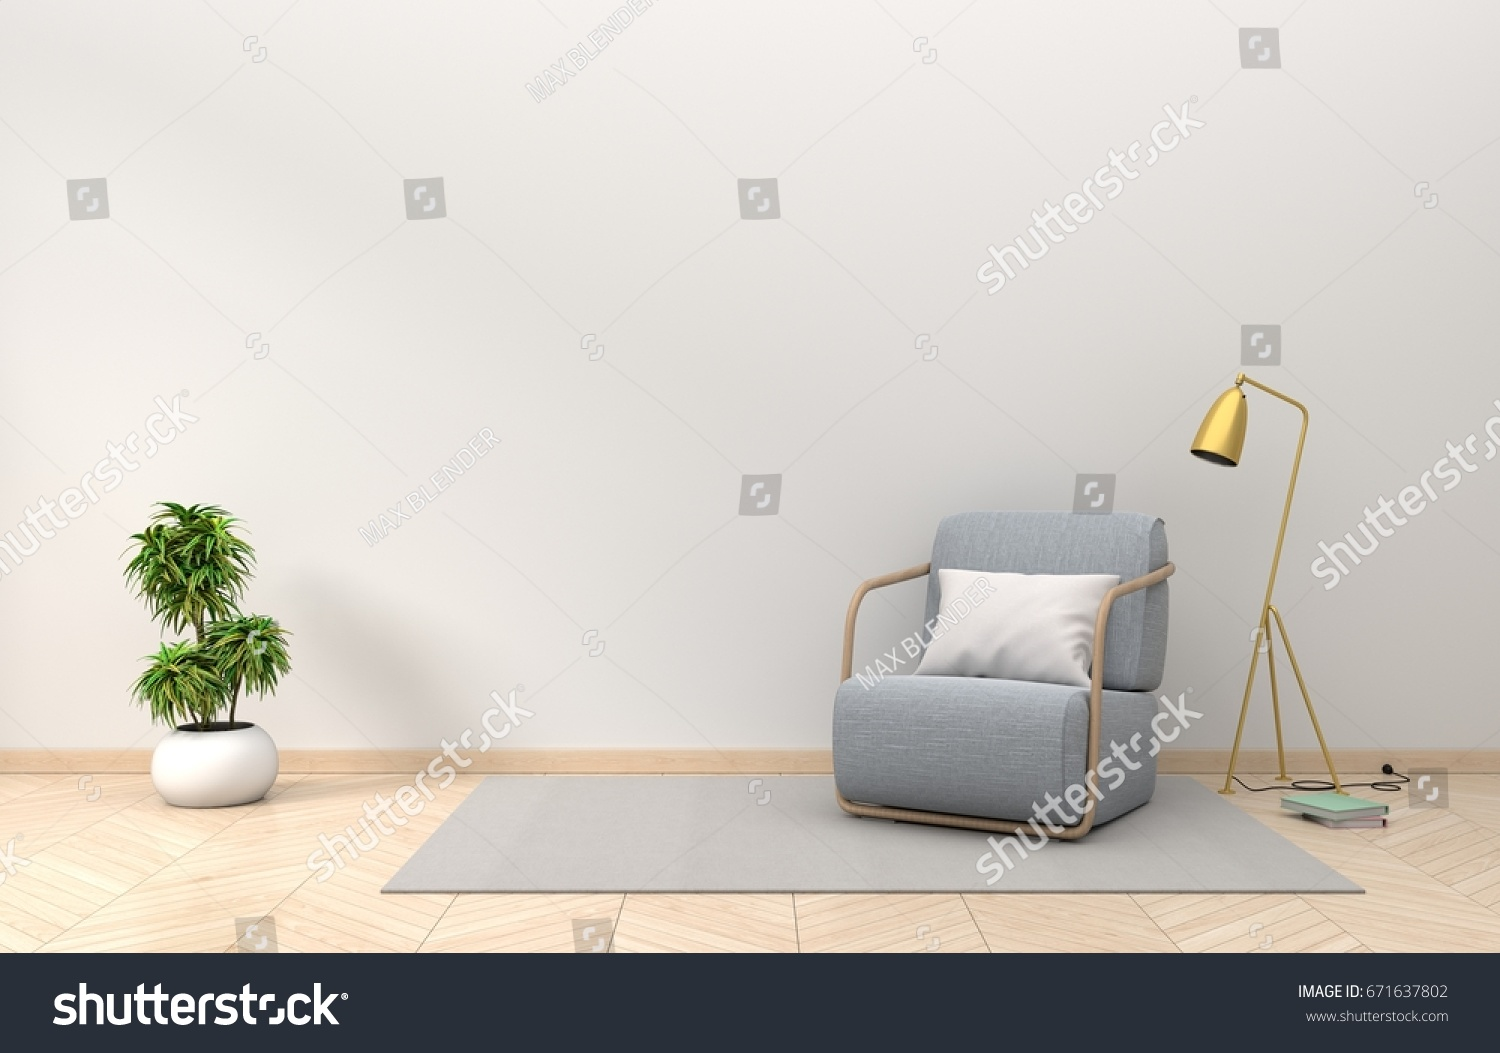 Living Room Interior Wall Mockup With Fabric Armchair Golden Lamp And Plants On Empty White